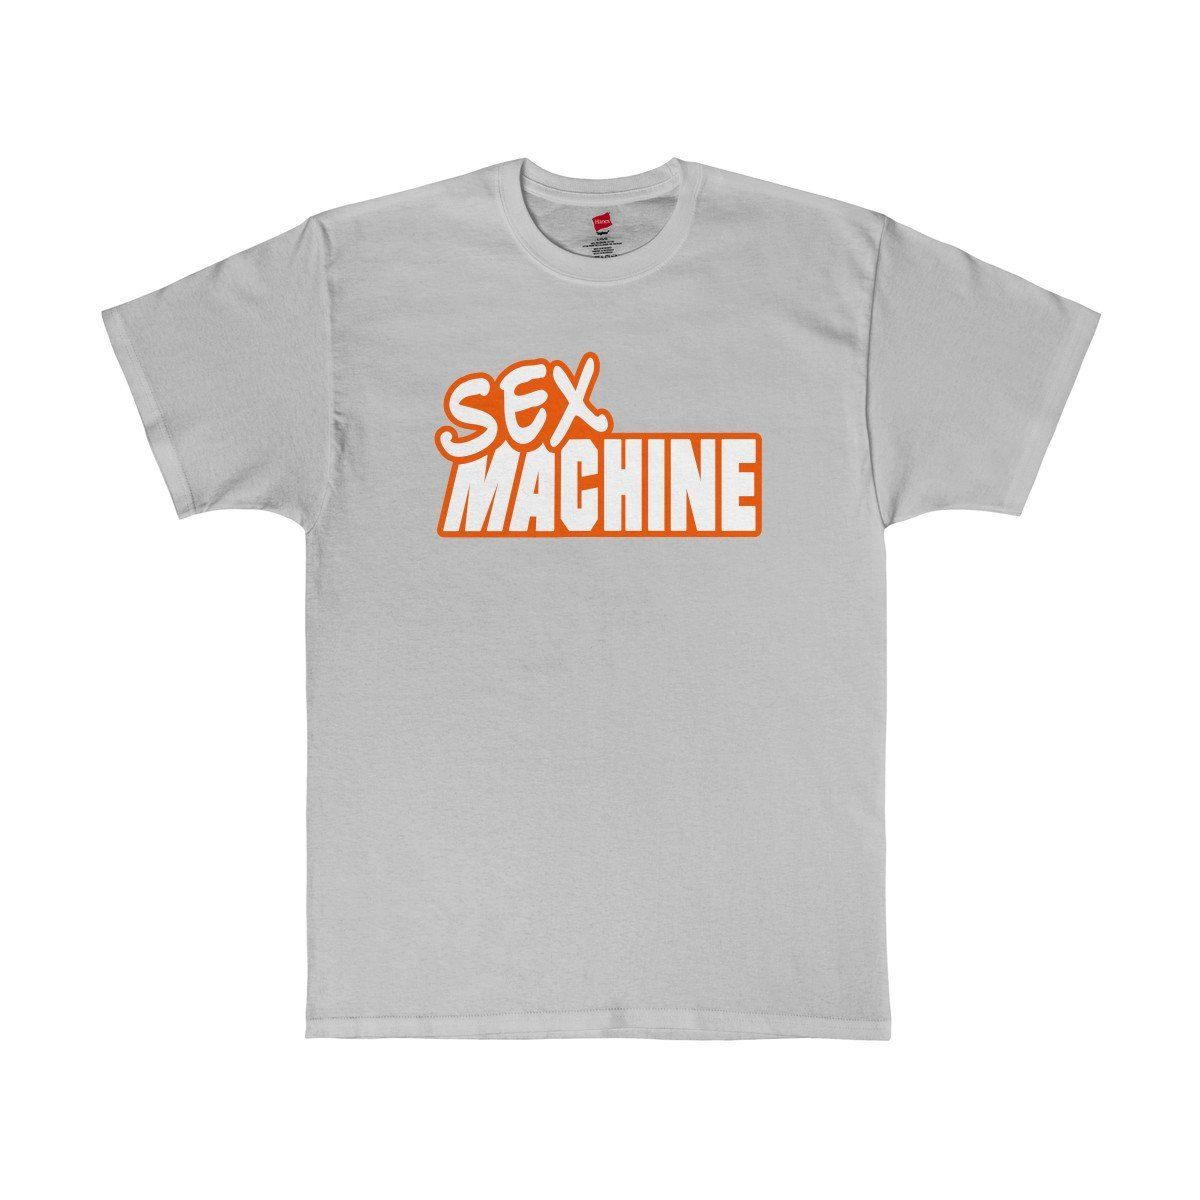 Sex machine t shirt, malaynude gallery